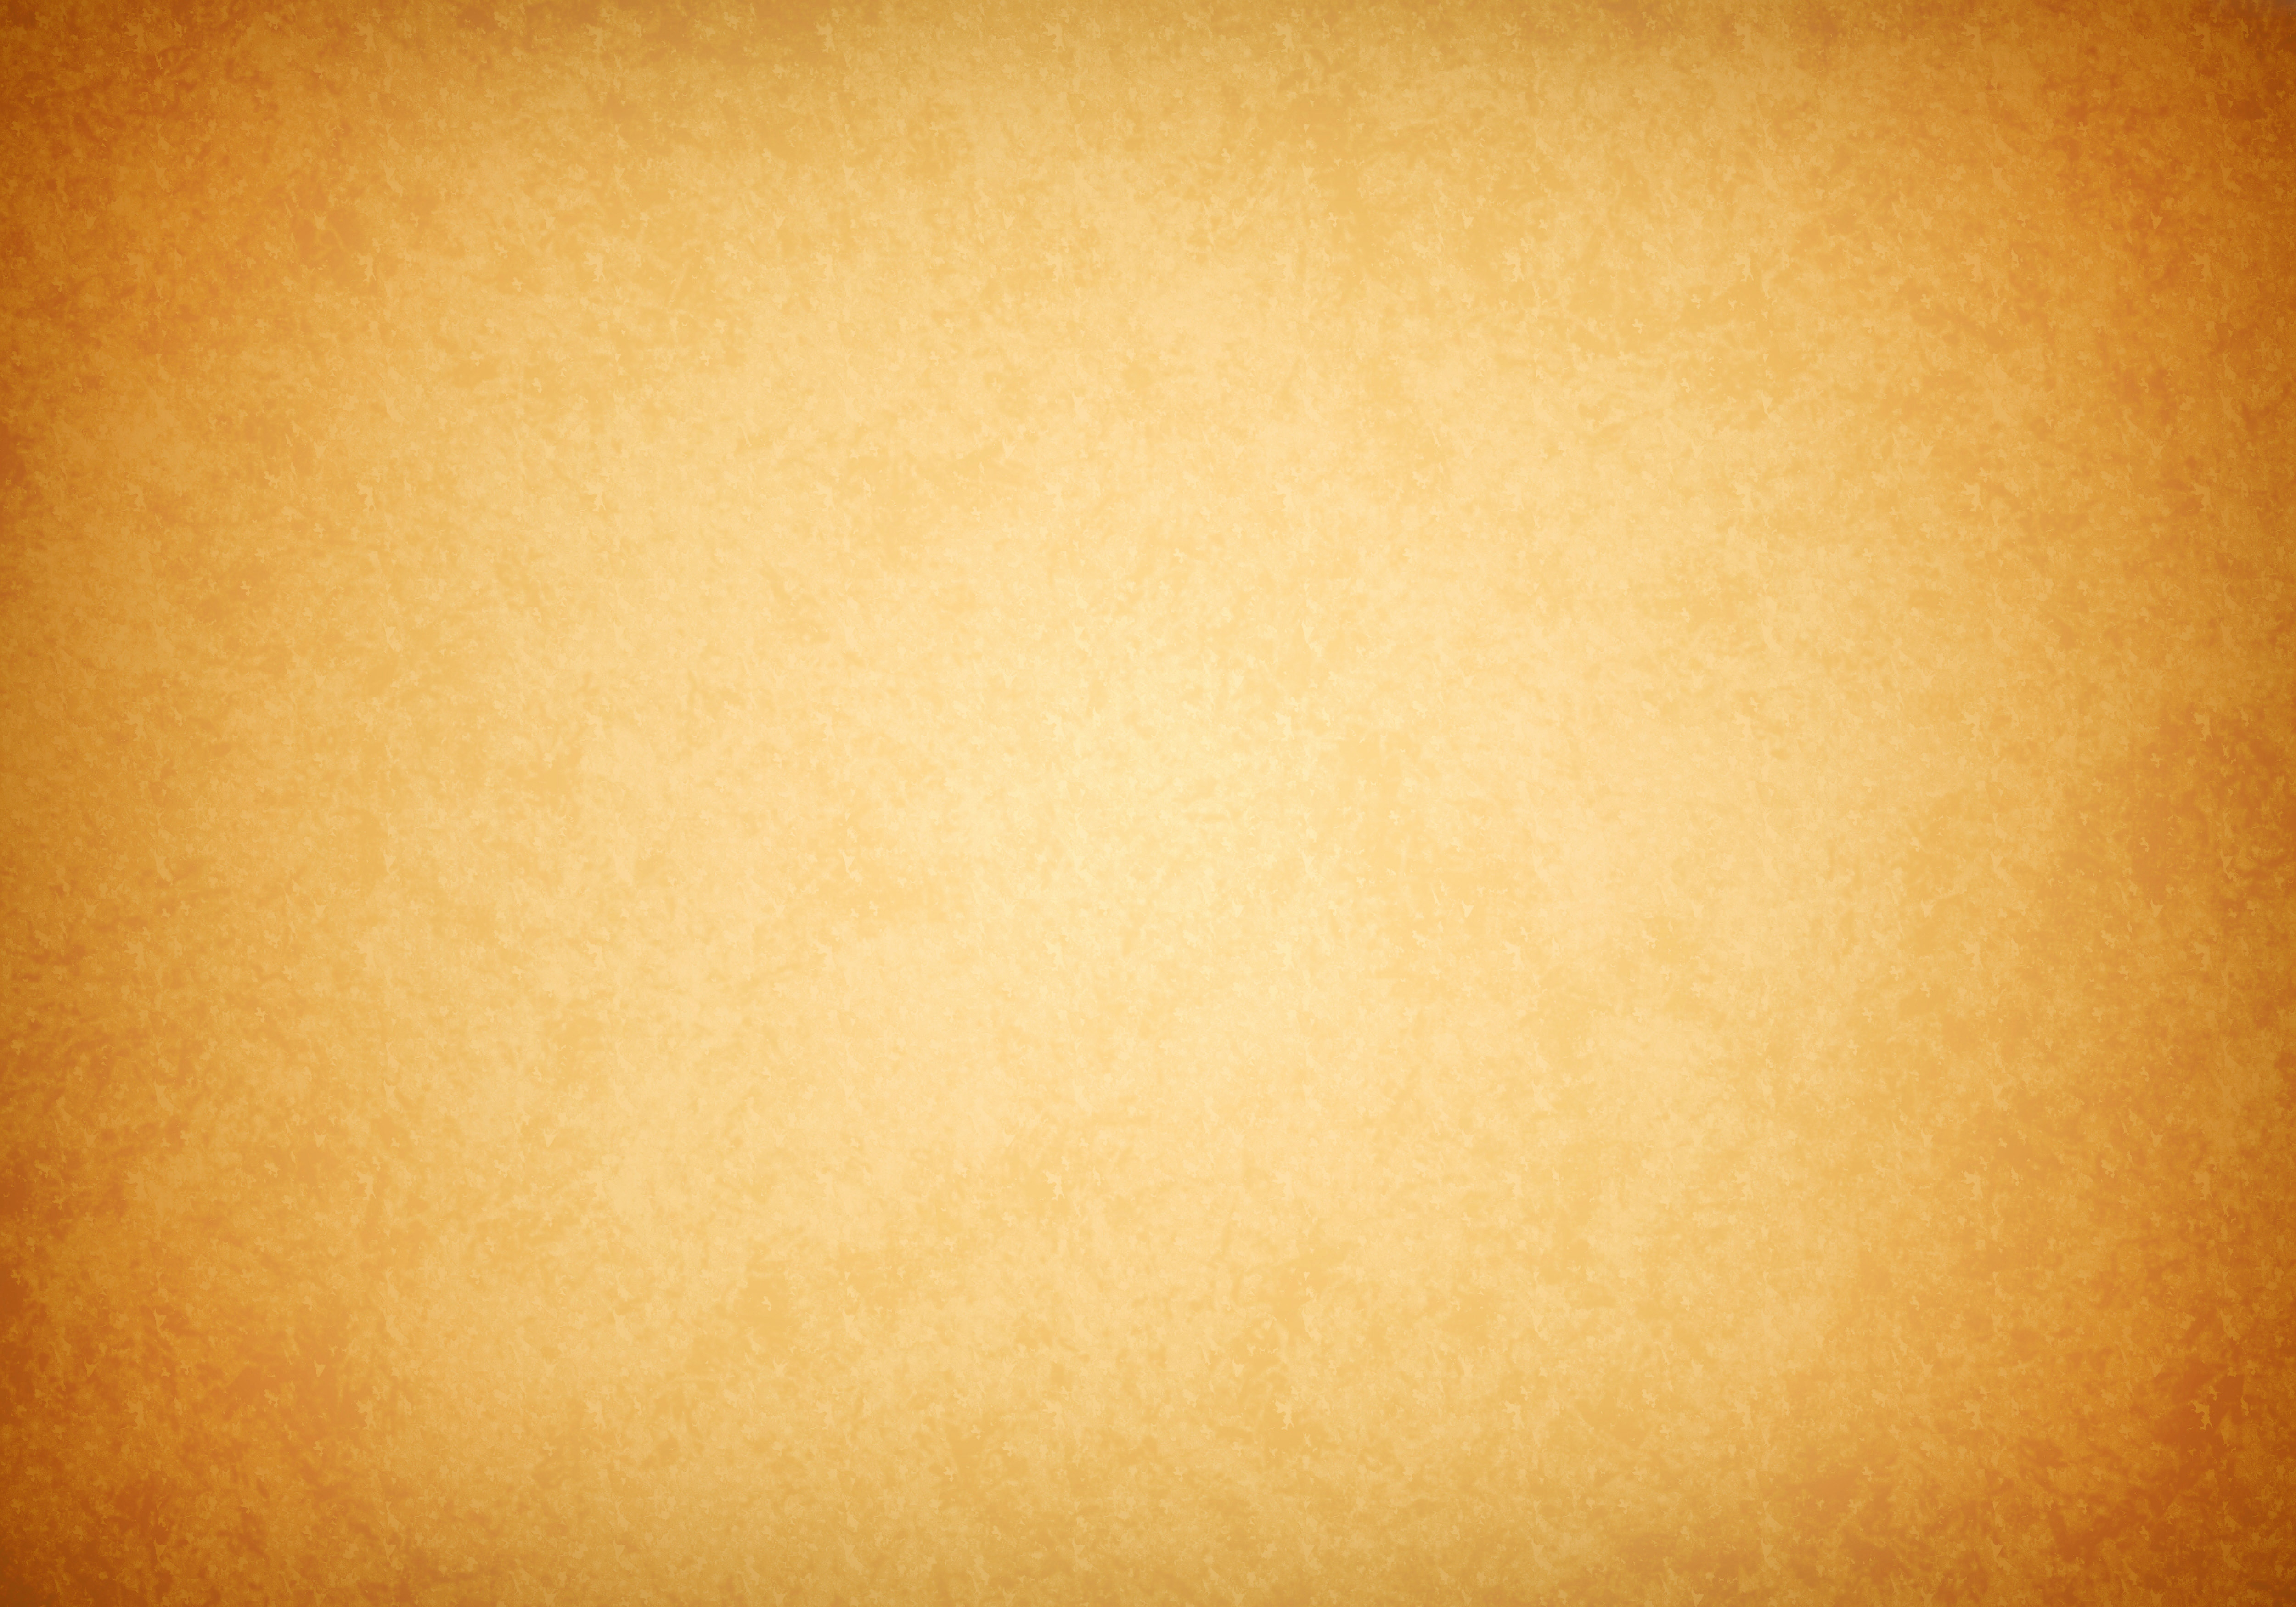 Free photo: Paper Background - texture, paper, brown - Non ...